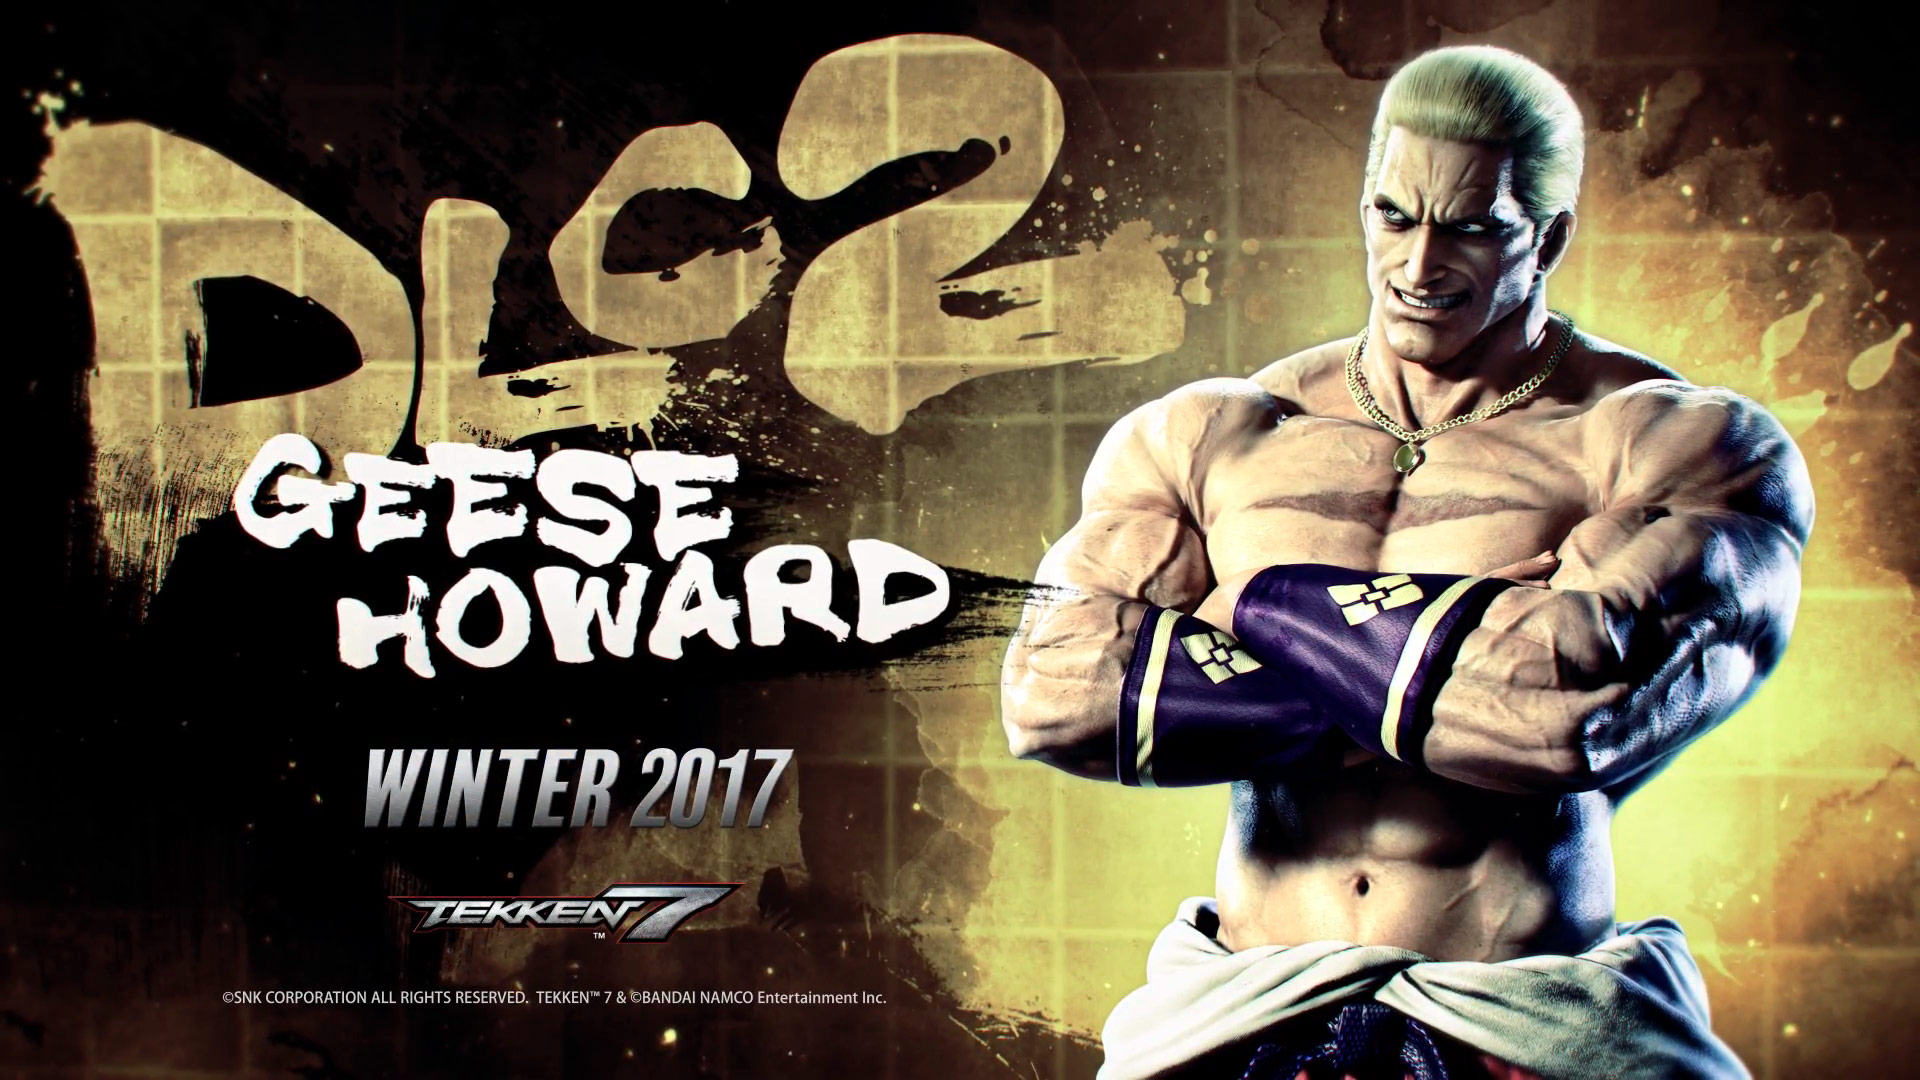 Geese Howard Tekken 7 screen shots 4 out of 9 image gallery